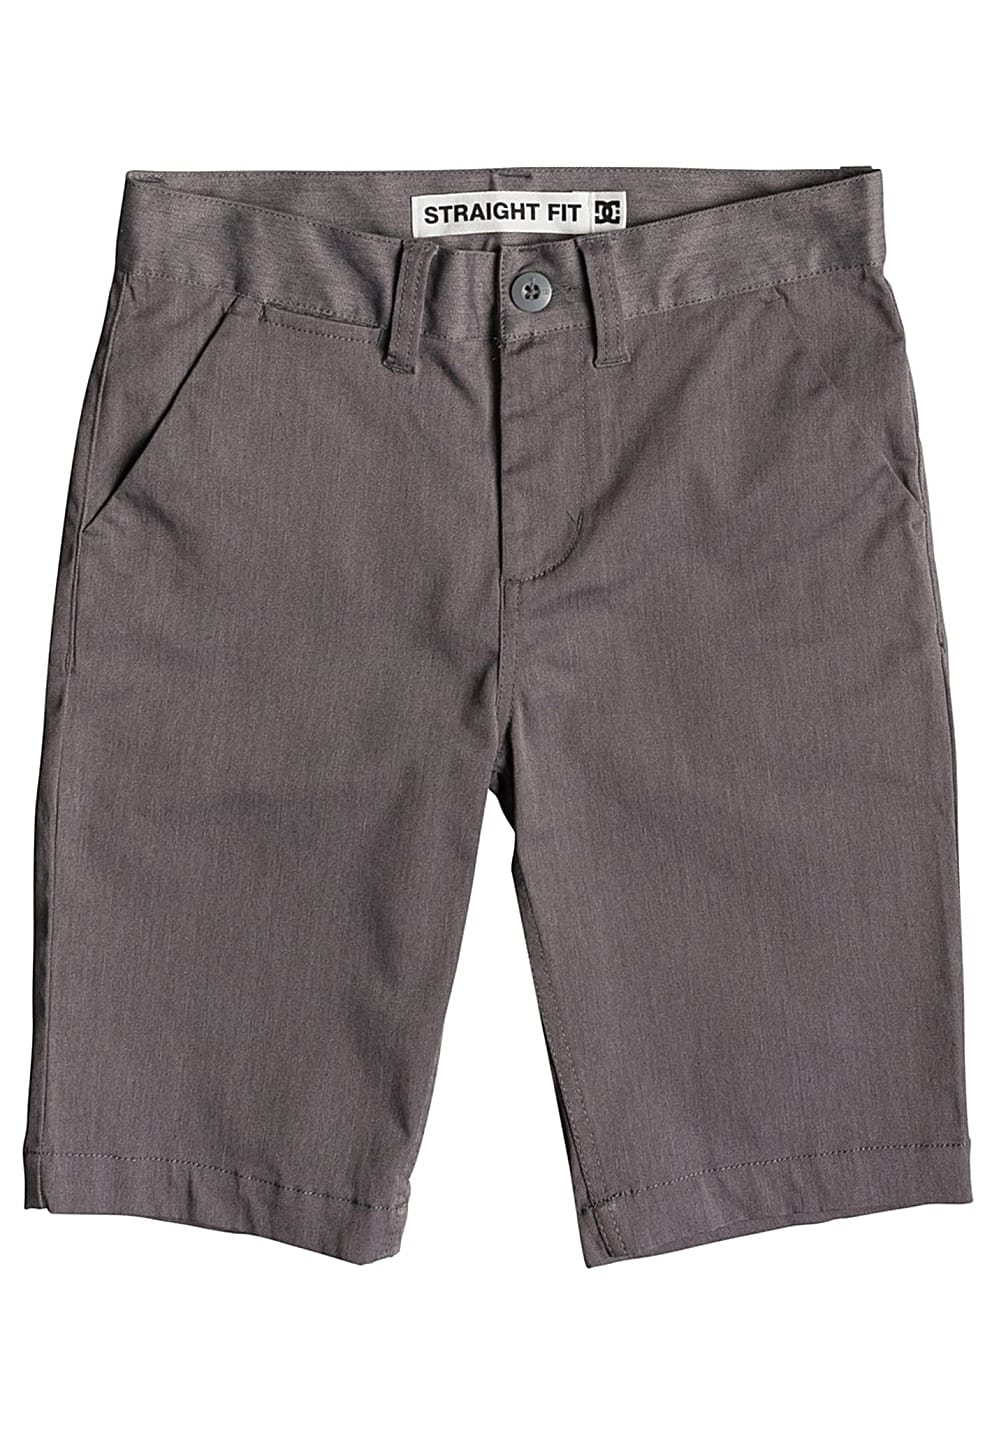 Boyshosen - DC Worker Straight Shorts für Jungs Grau - Onlineshop Planet Sports